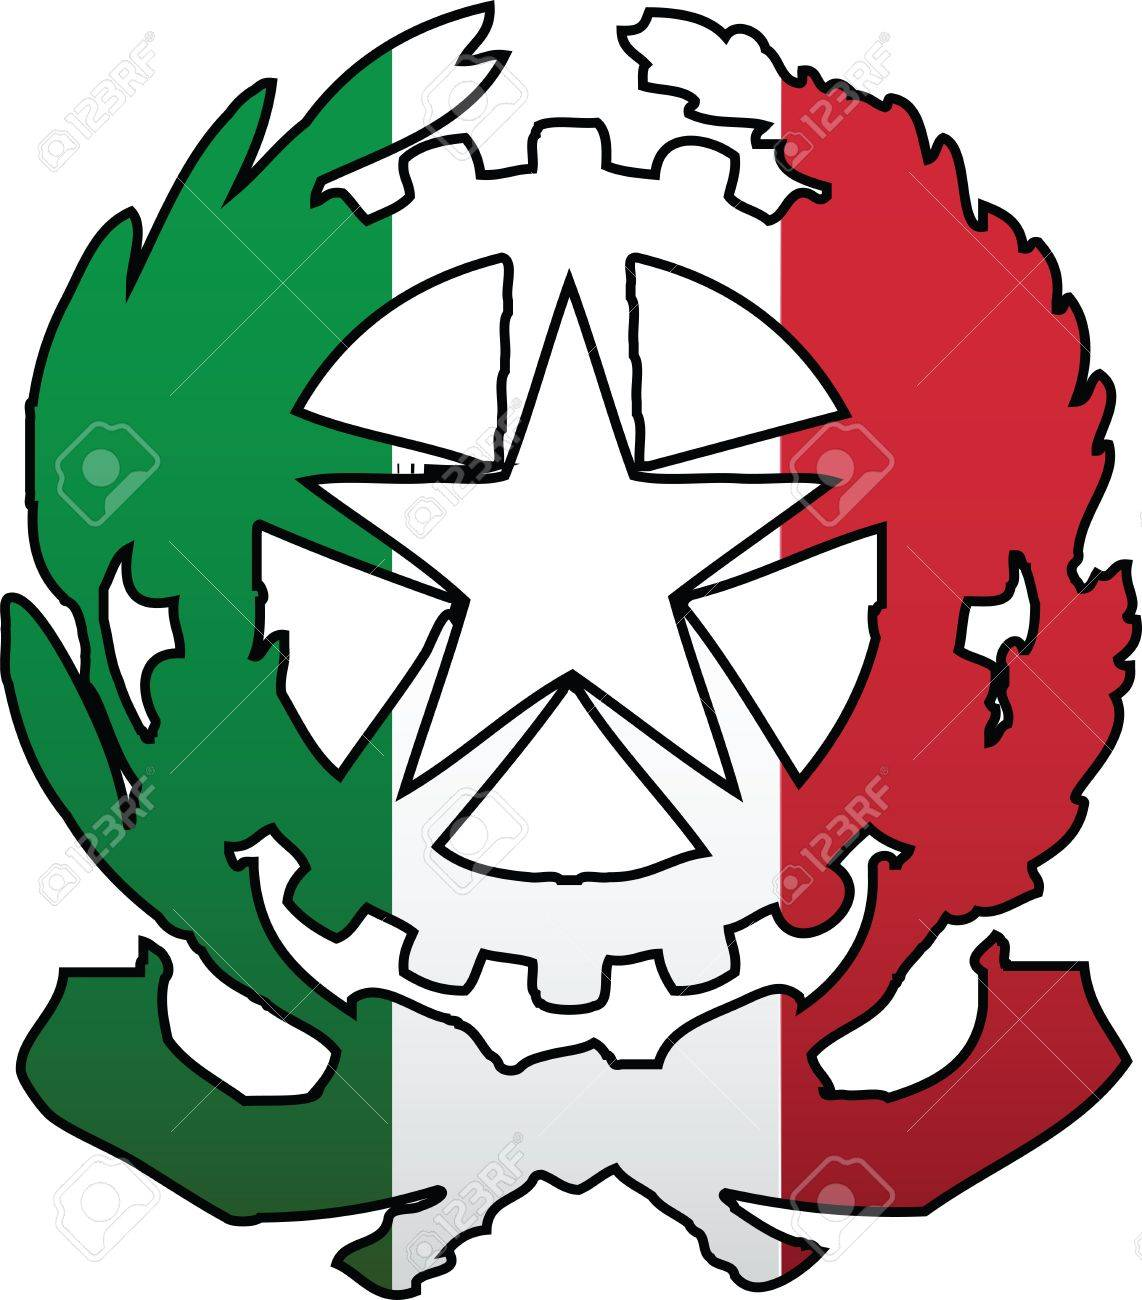 1142x1300 Italian Flag And Symbol Composition Royalty Free Cliparts, Vectors